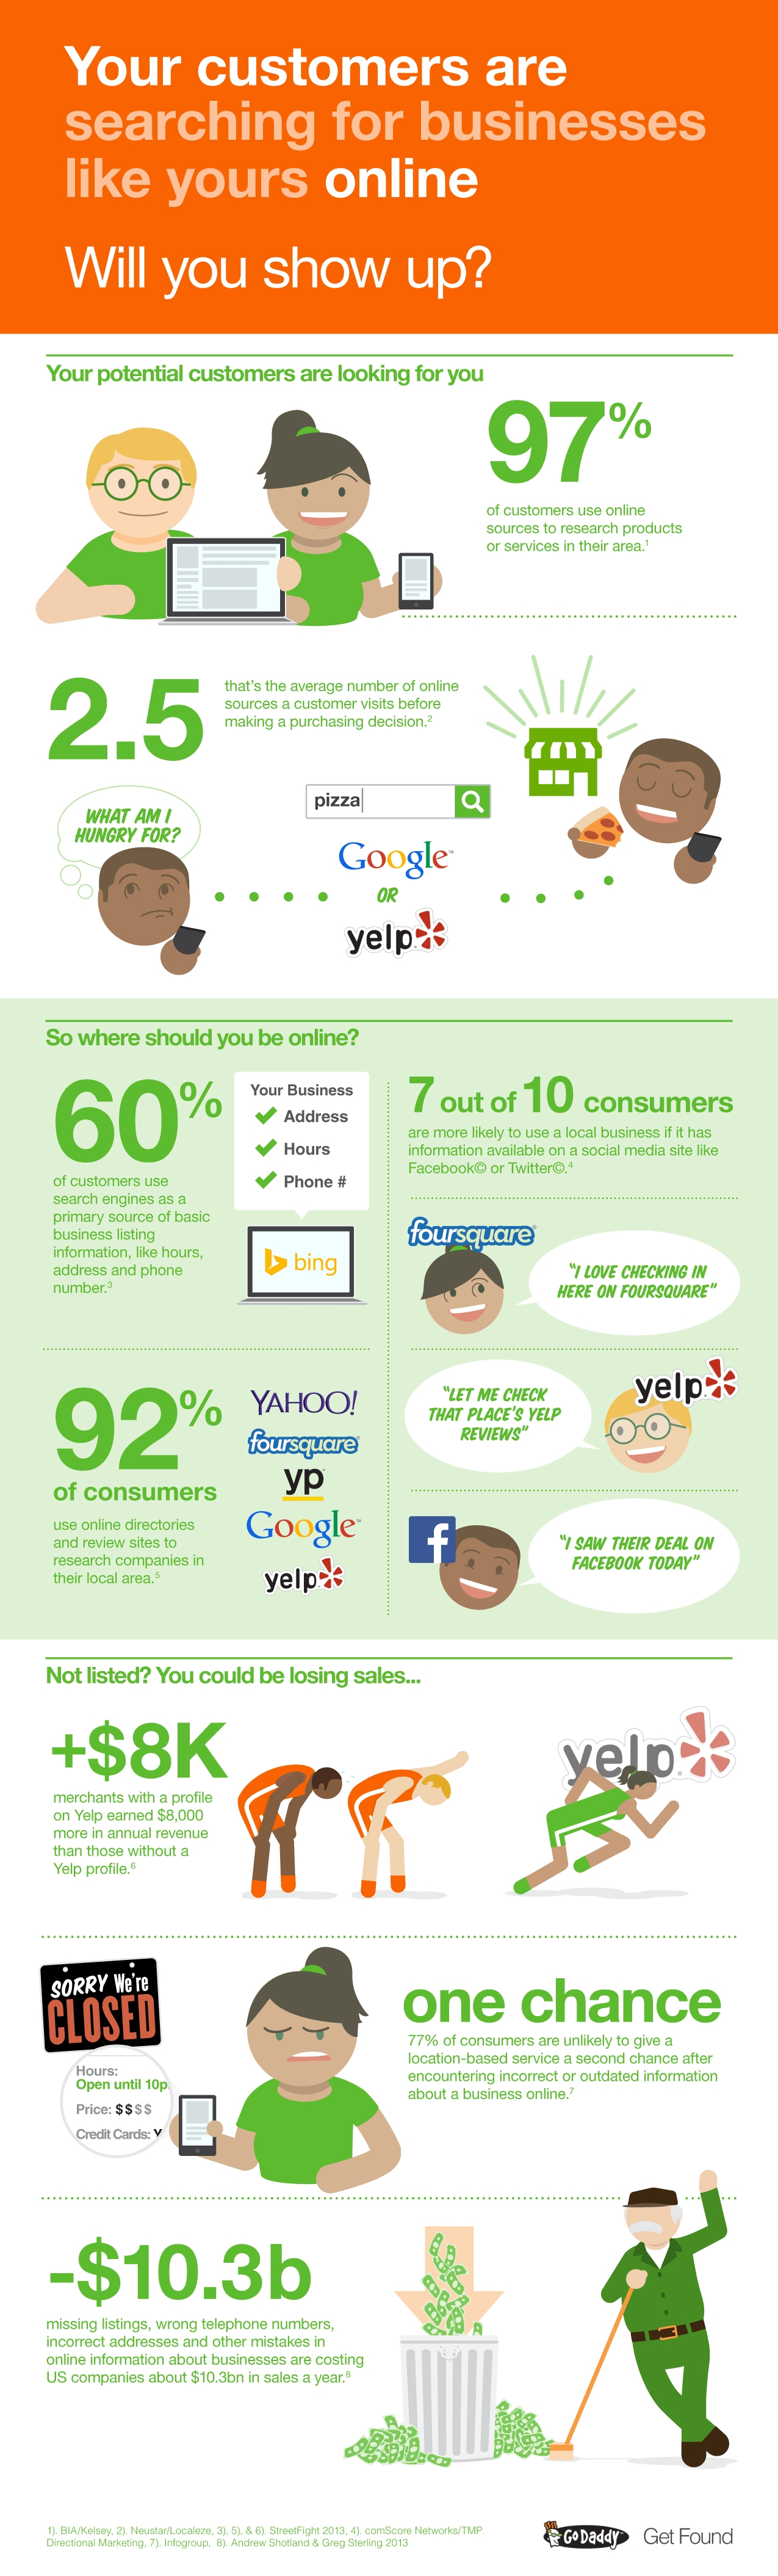 How do Customers Get Information in 2017?